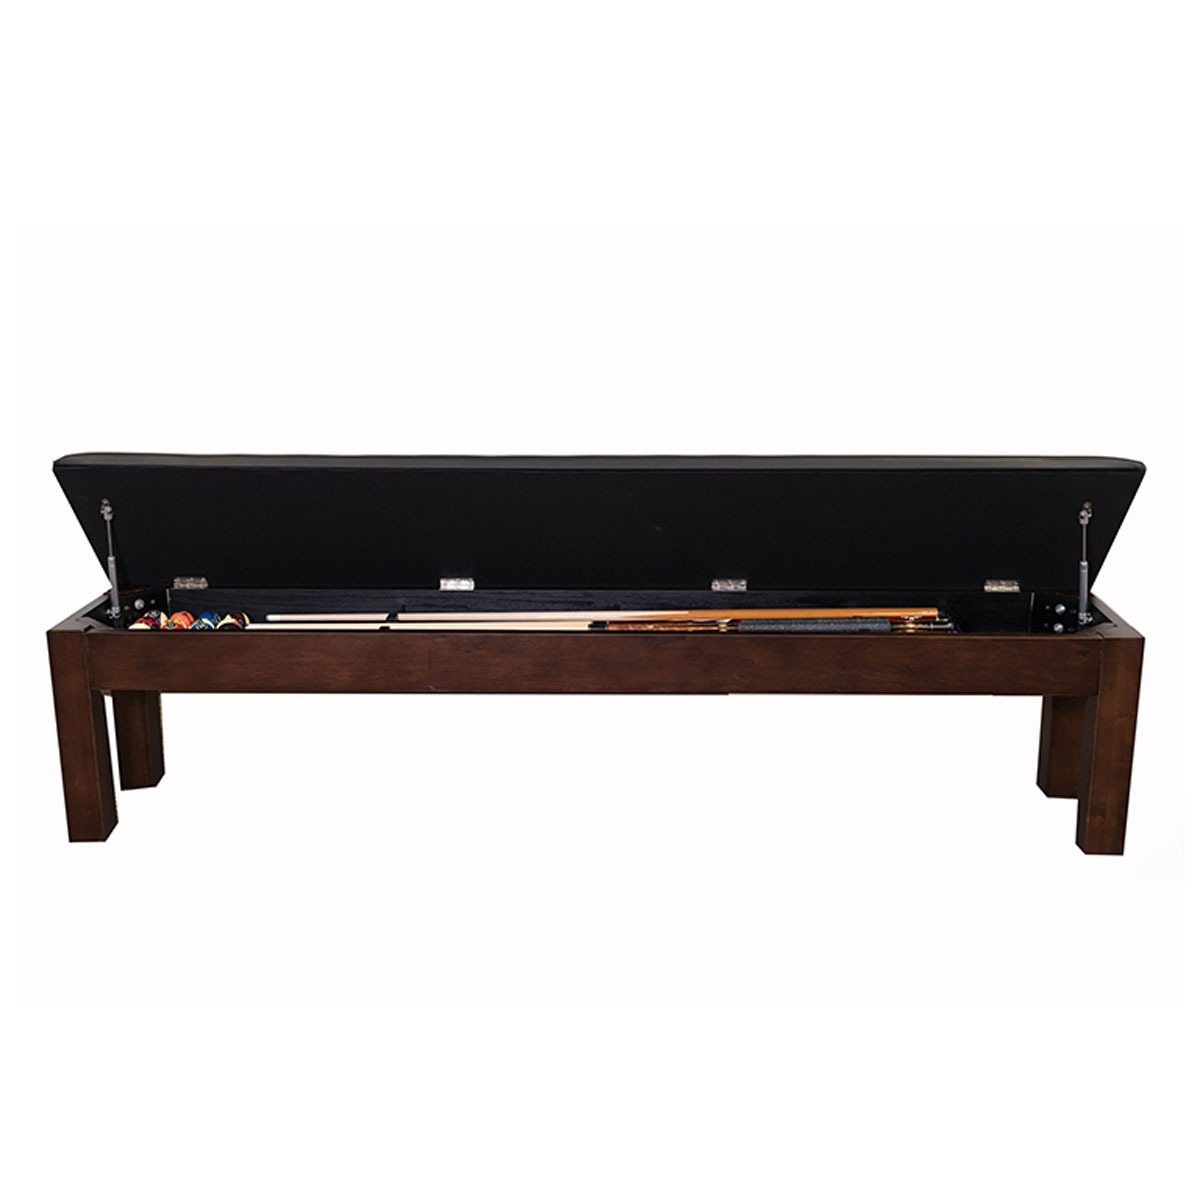 Hamilton Bench Openq - Eliminator Pool Table